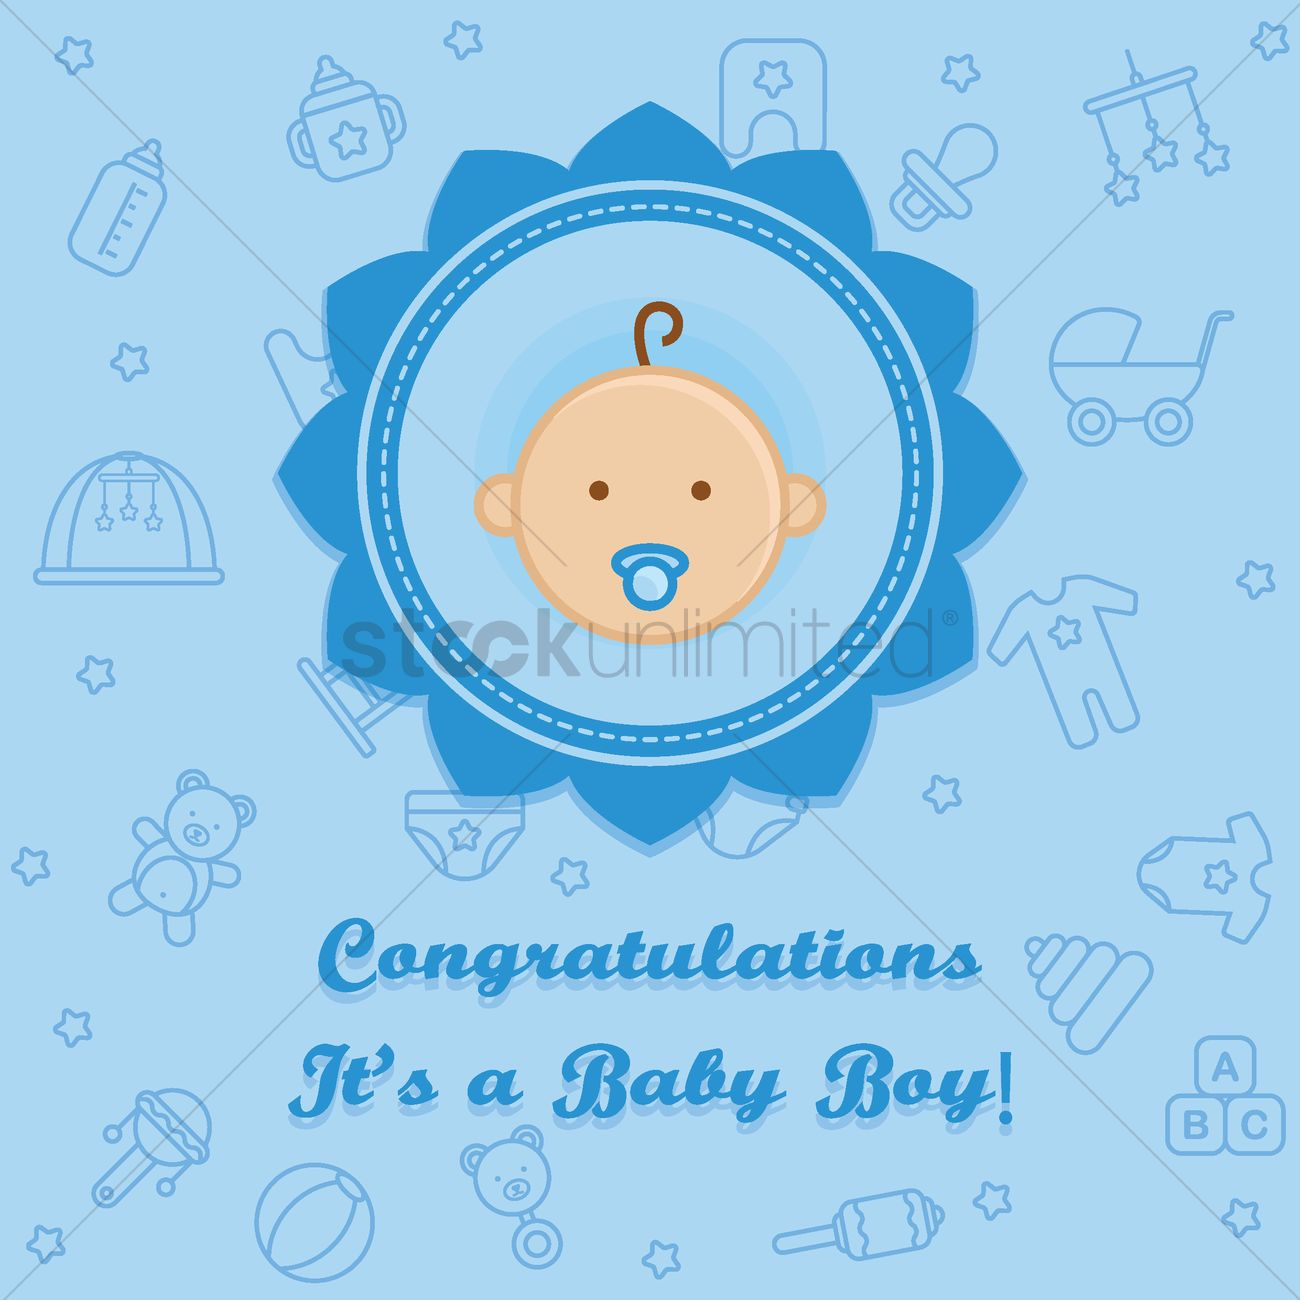 congrats for the baby